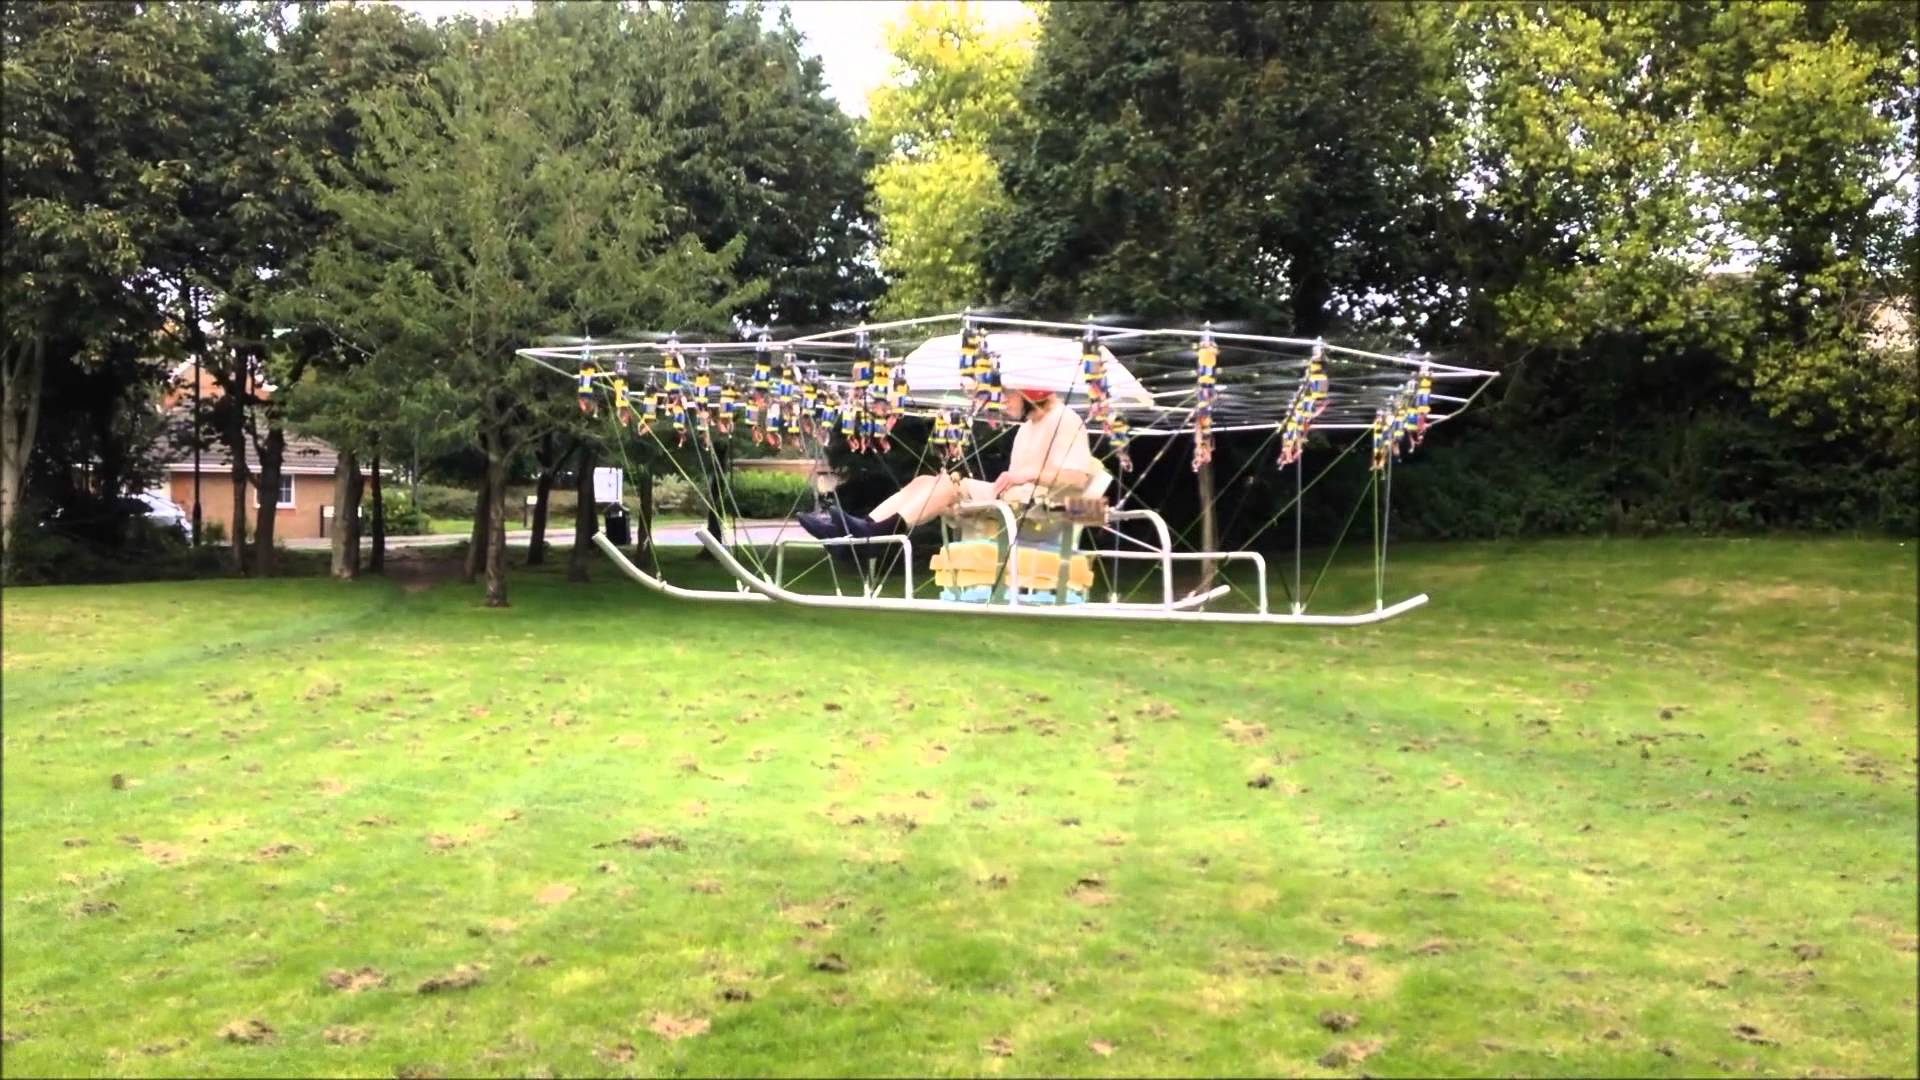 Mad genius creates a crazy drone flying machine using 54 propellers